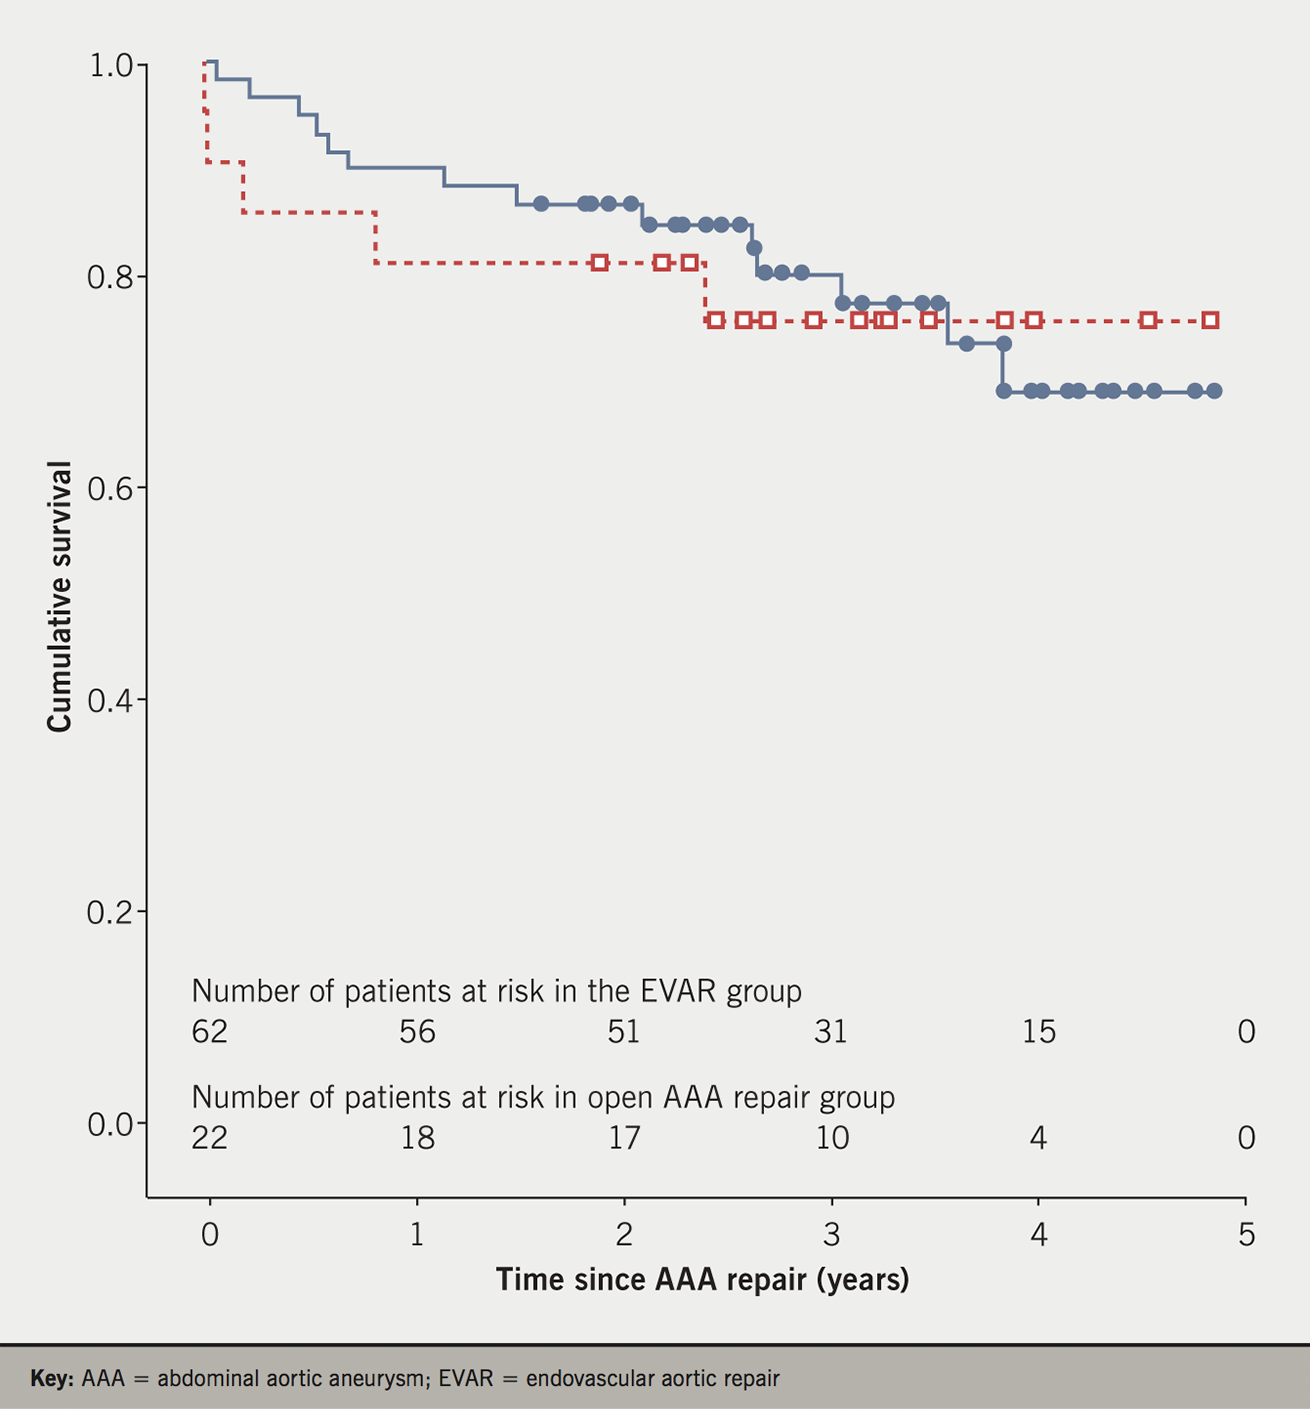 MacGregor Figure 1. Kaplan-Meier survival plot in 84 patients. Solid line (blue) indicates endovascular aortic repair (EVAR) and dashed line (red) indicates open abdominal aortic aneurysm (AAA) repair. Log rank test shows no significant differences in survival between surgical procedures (c2=0.04, p=0.837)